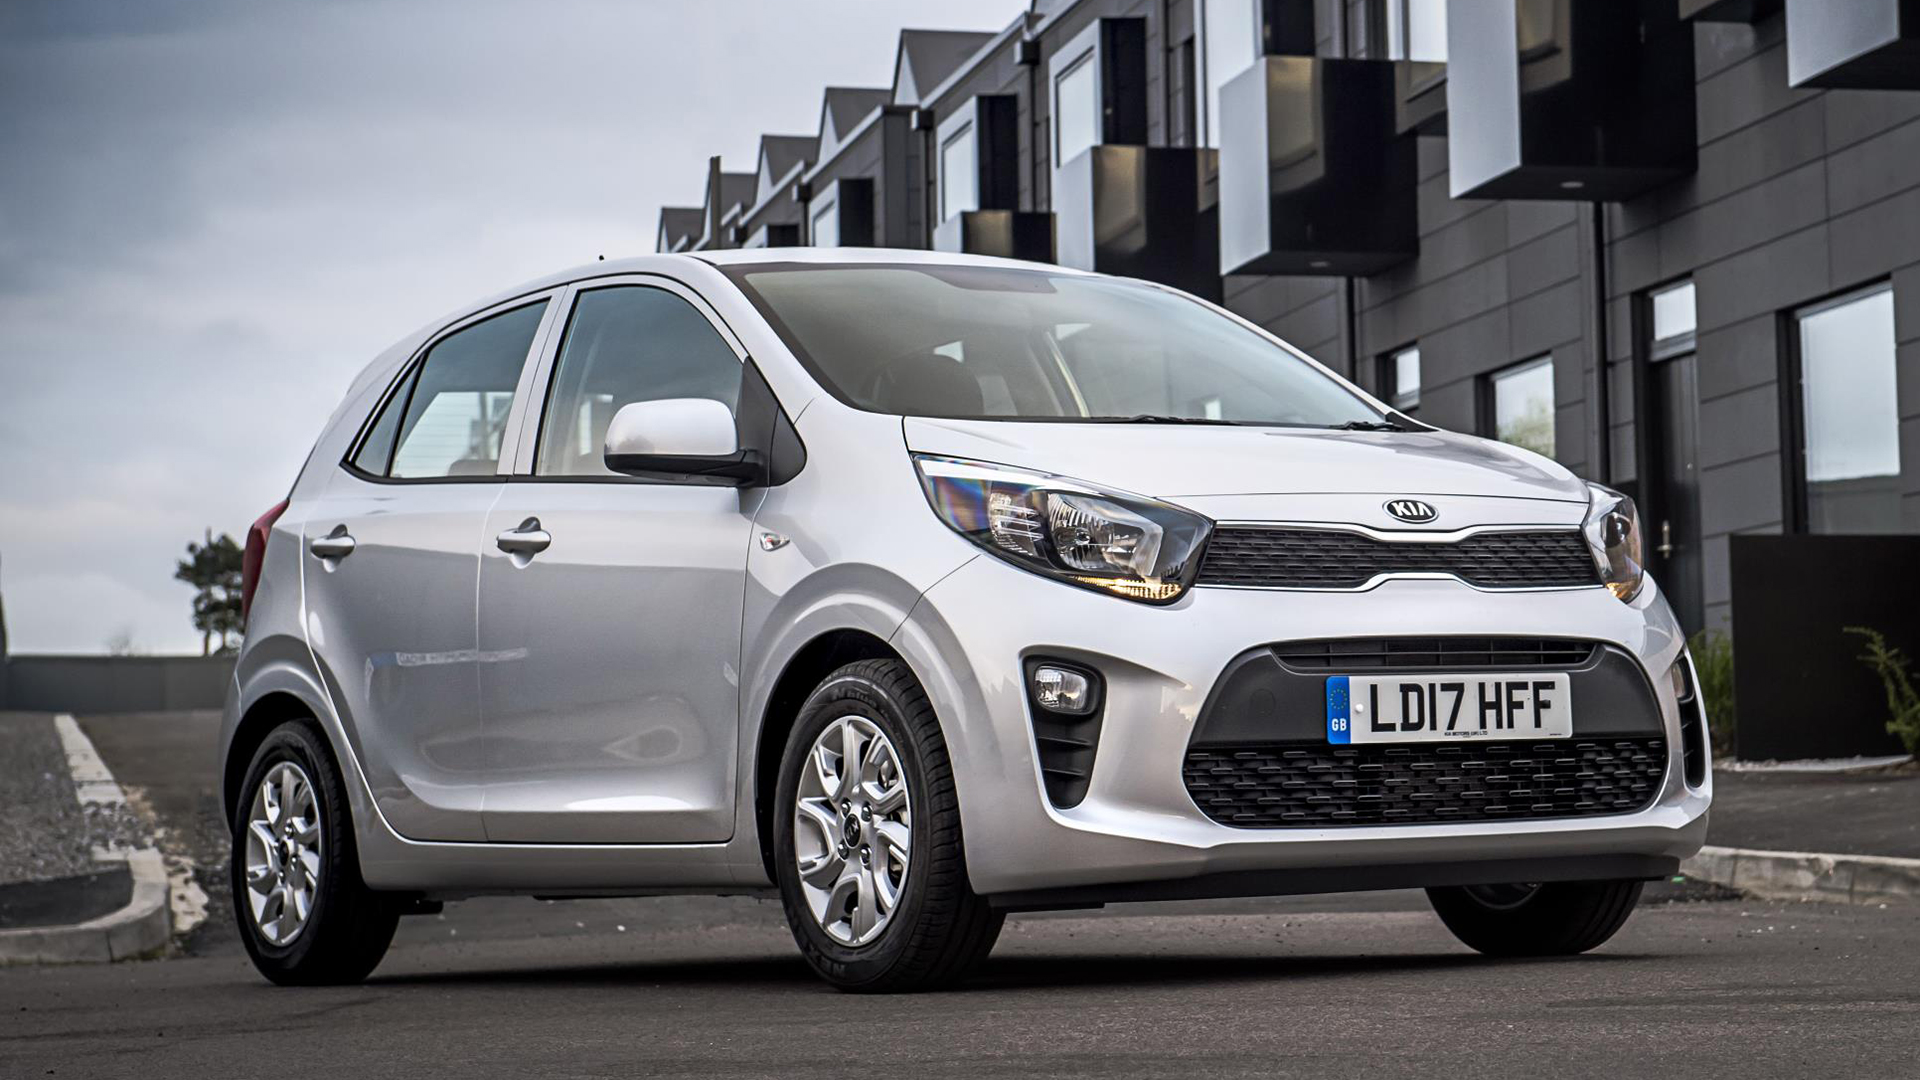 new kia picanto city car will cost from 9450 auto trader uk. Black Bedroom Furniture Sets. Home Design Ideas